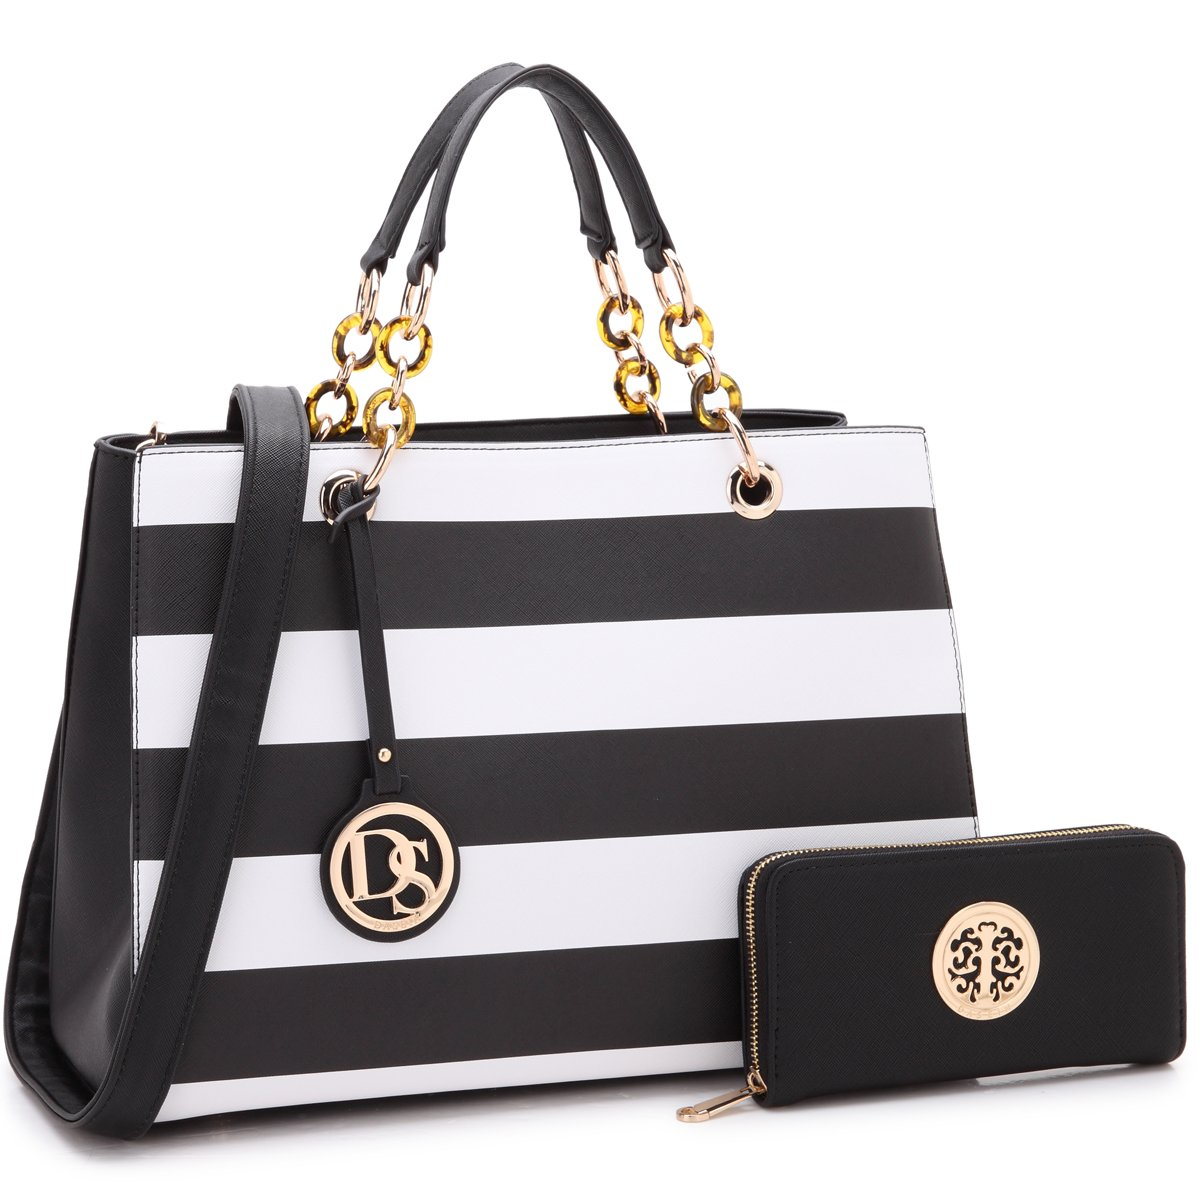 8b92bb3ff8ad22 Amazon.com: Womens Large Top Handle Handbag Structured Tote Bag Designer  Shoulder Bag w/Matching Wallet (1-black stripe wallet set): Shoes